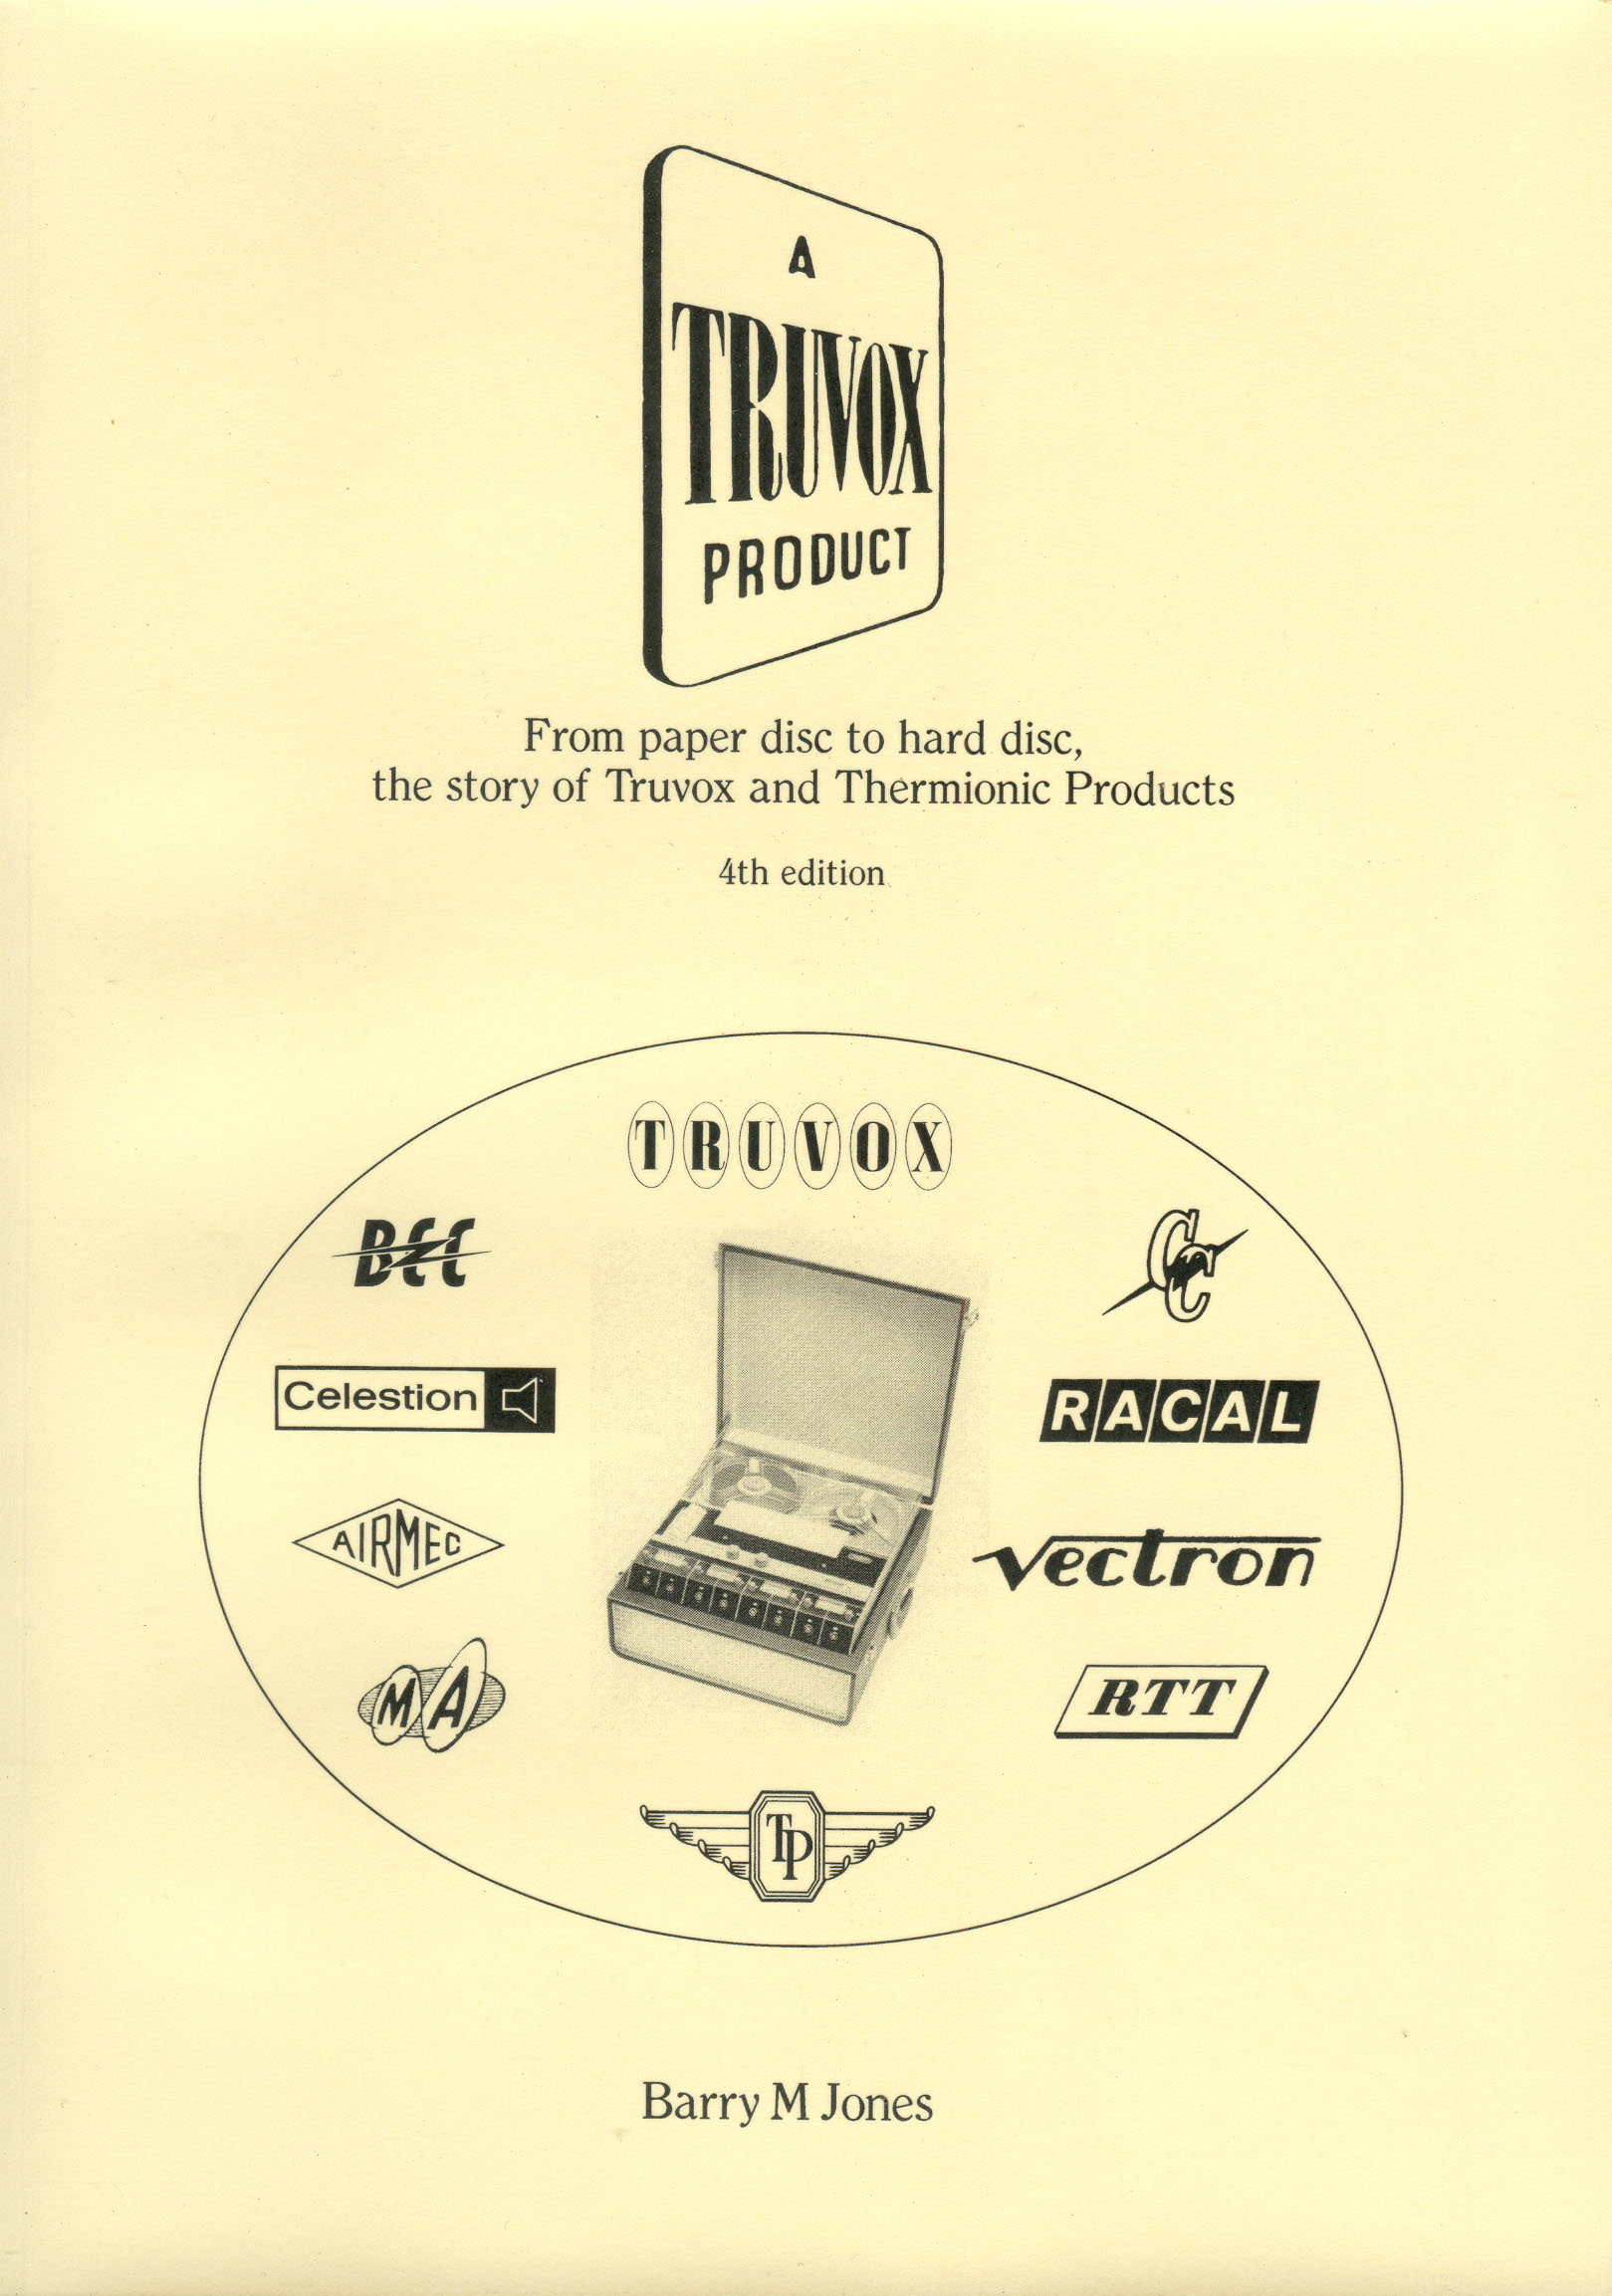 A Truvox product